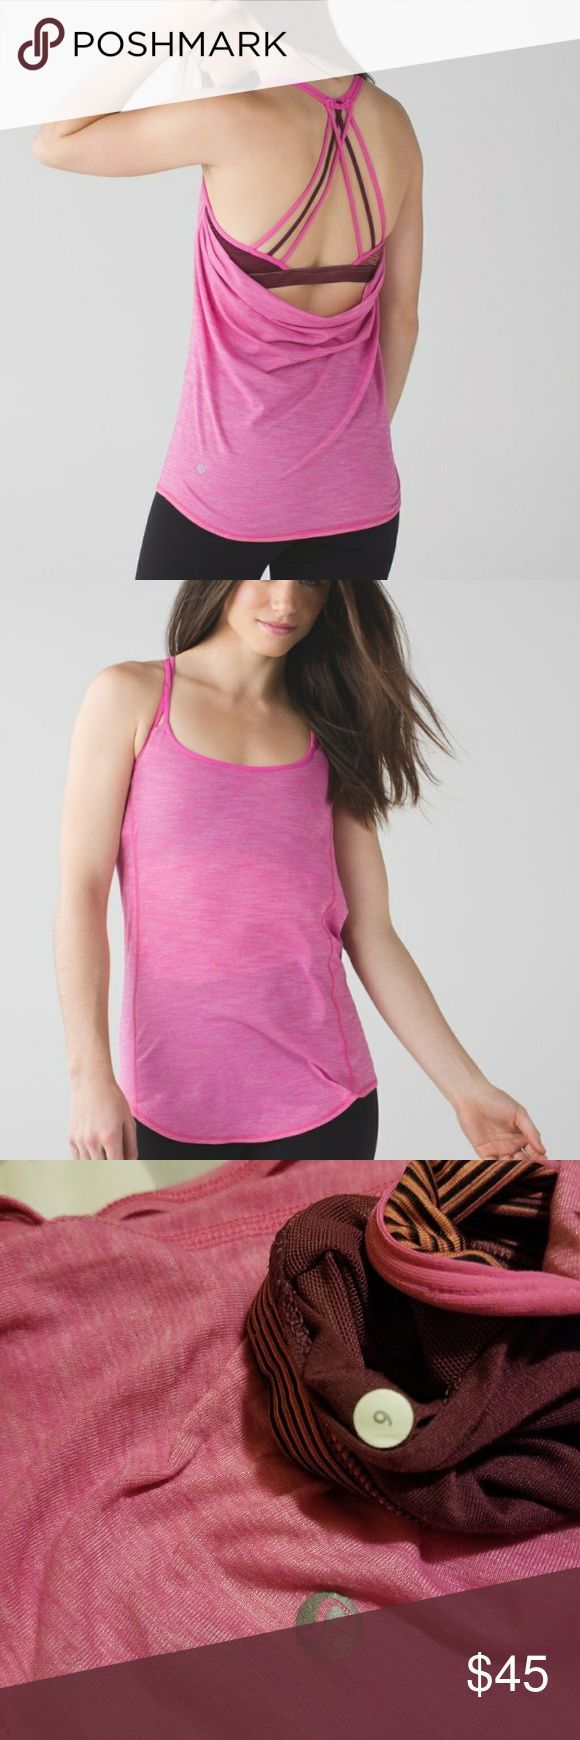 Lululemon Lighten Up Tank Heathered Pink Paradise Lululemon Lighten Up Tank Heathered Pink Paradise/Simply Radiant Pink Paradise Black/Red Grape. Built in bra, no padding. Size 6.  The classic lulu tank with strappy/open back. Super breathable, perfect for yoga or pilates!  Only worn once, in AMAZING condition. Sorry no trades! lululemon athletica Tops Tank Tops